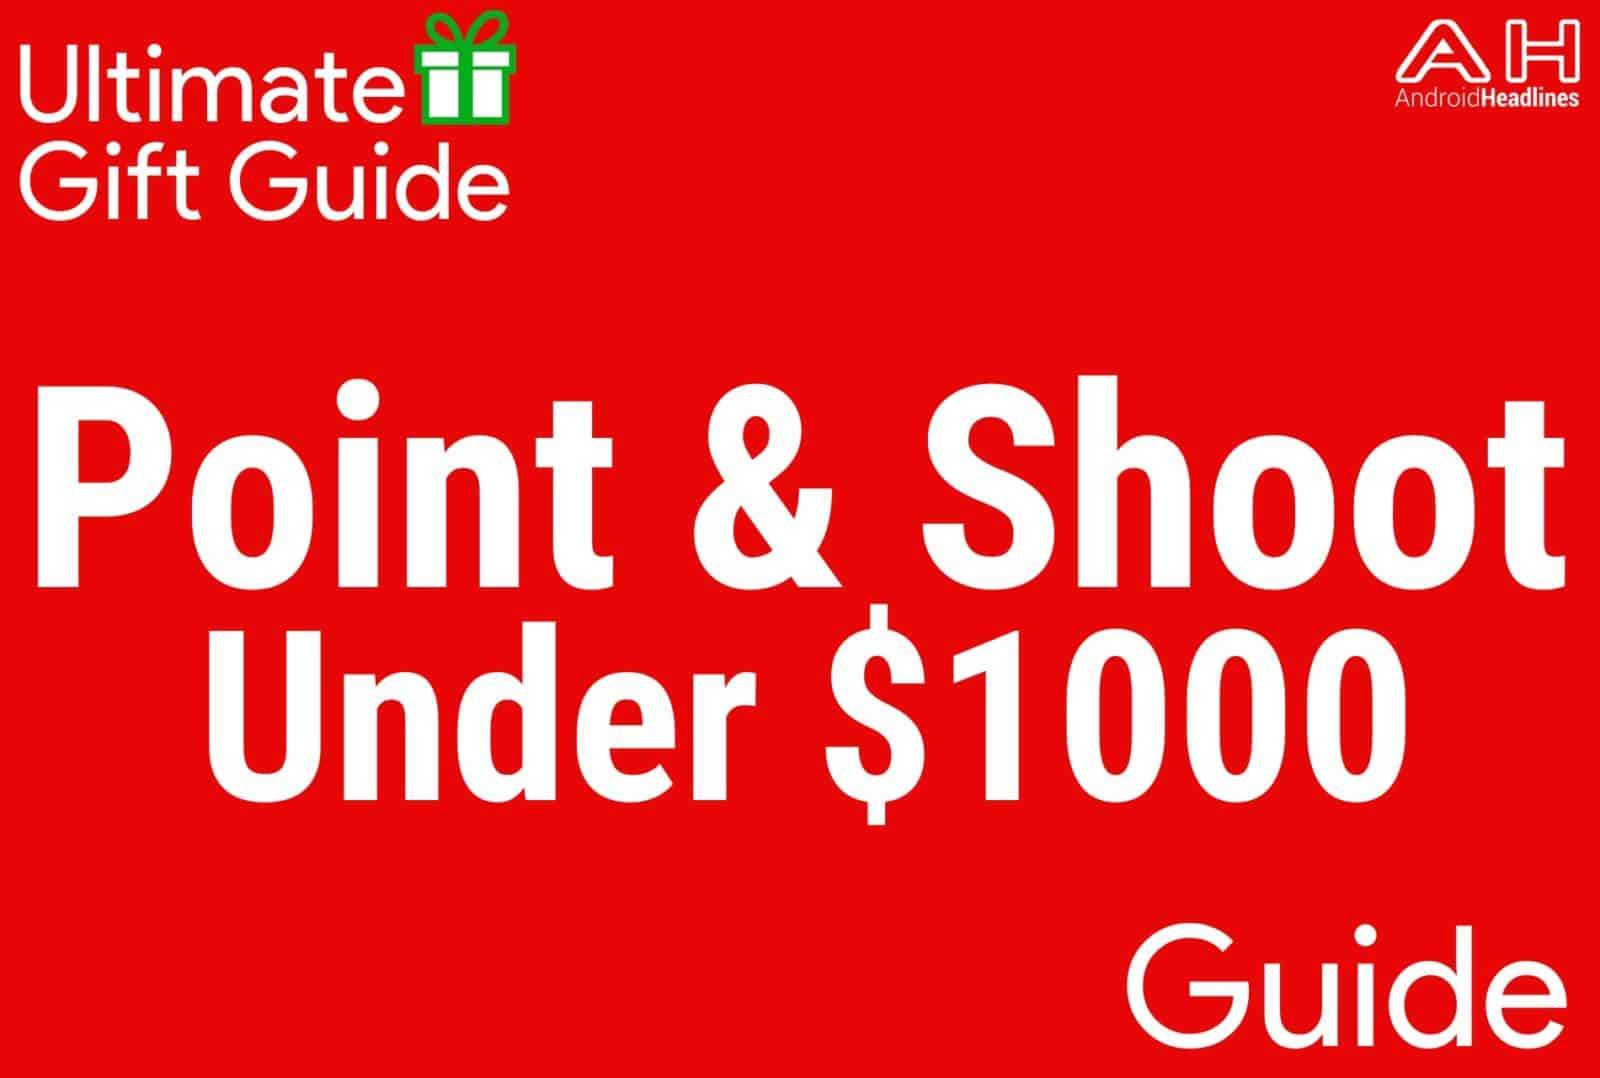 Point and Shoot Cameras Under $1000 - Gift Guide 2015